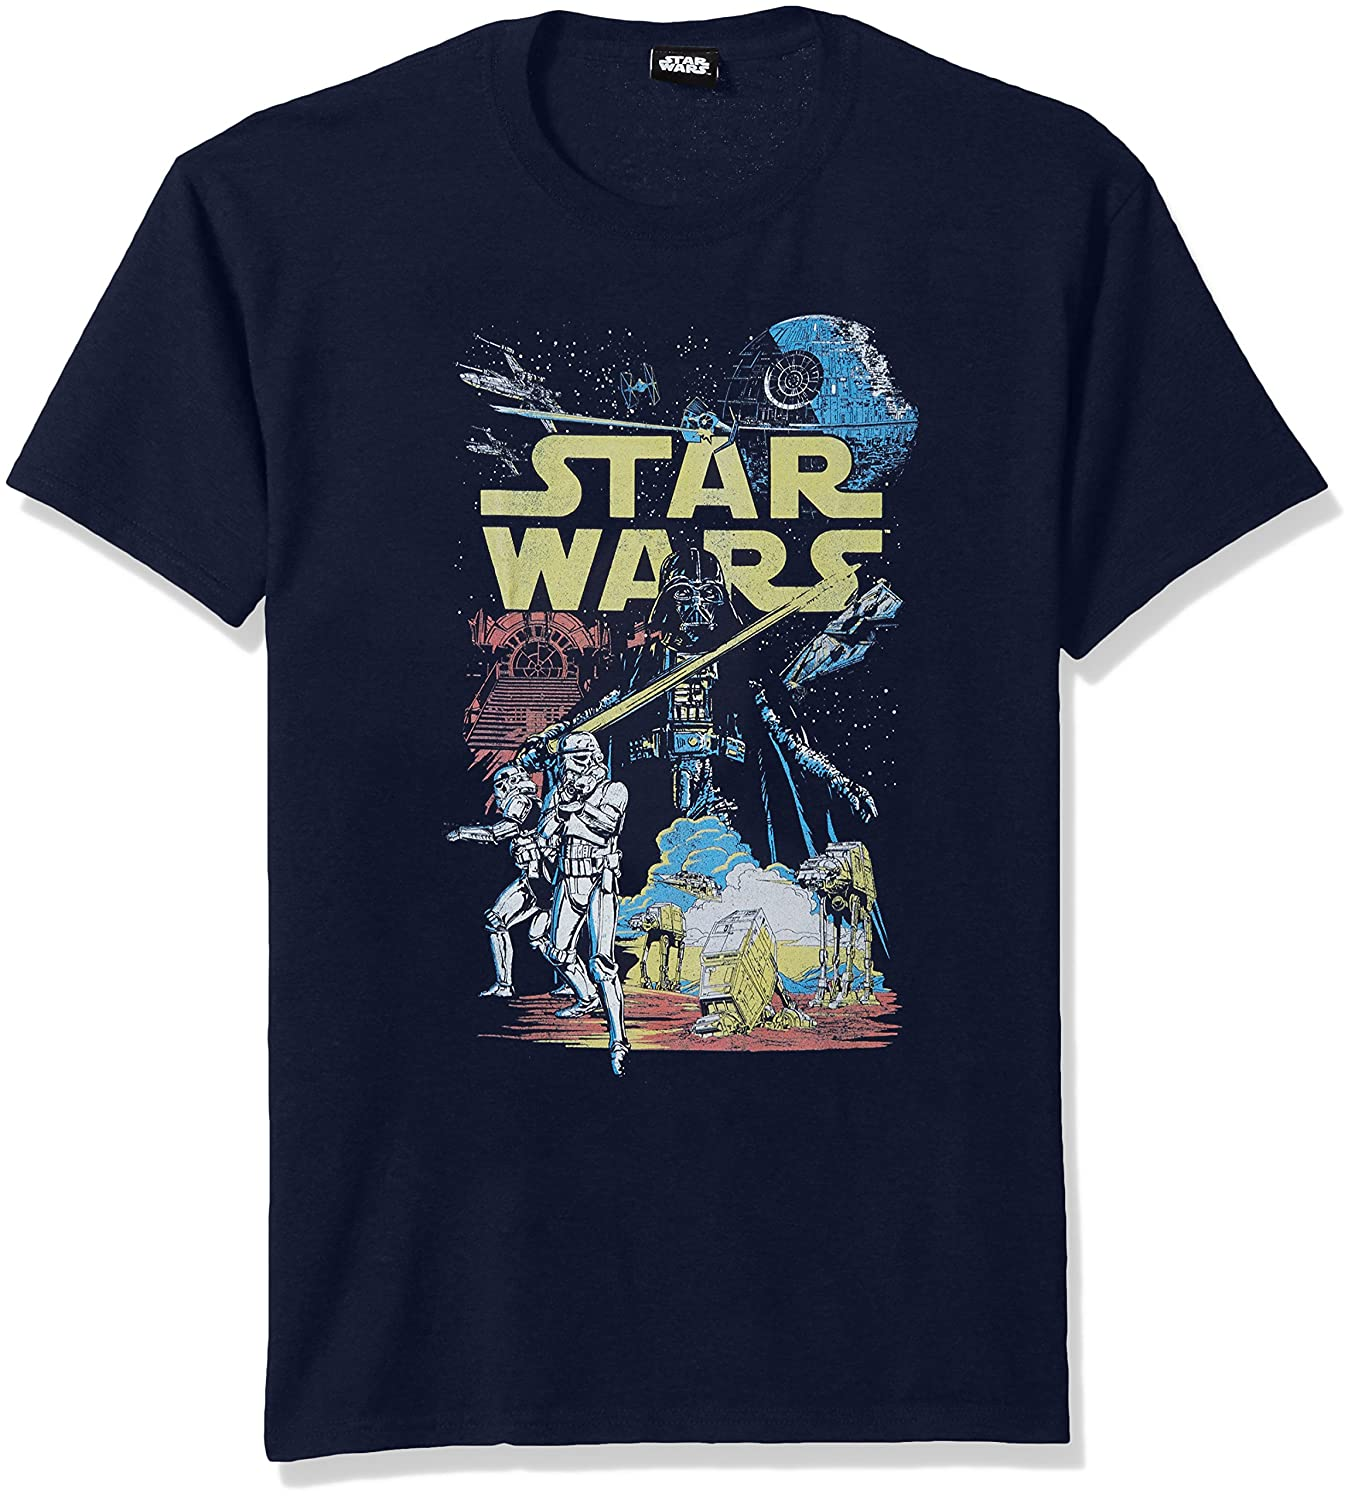 Star Wars Men's Rebel Classic Graphic T-Shirt Fifth Sun STRW2154-10001001